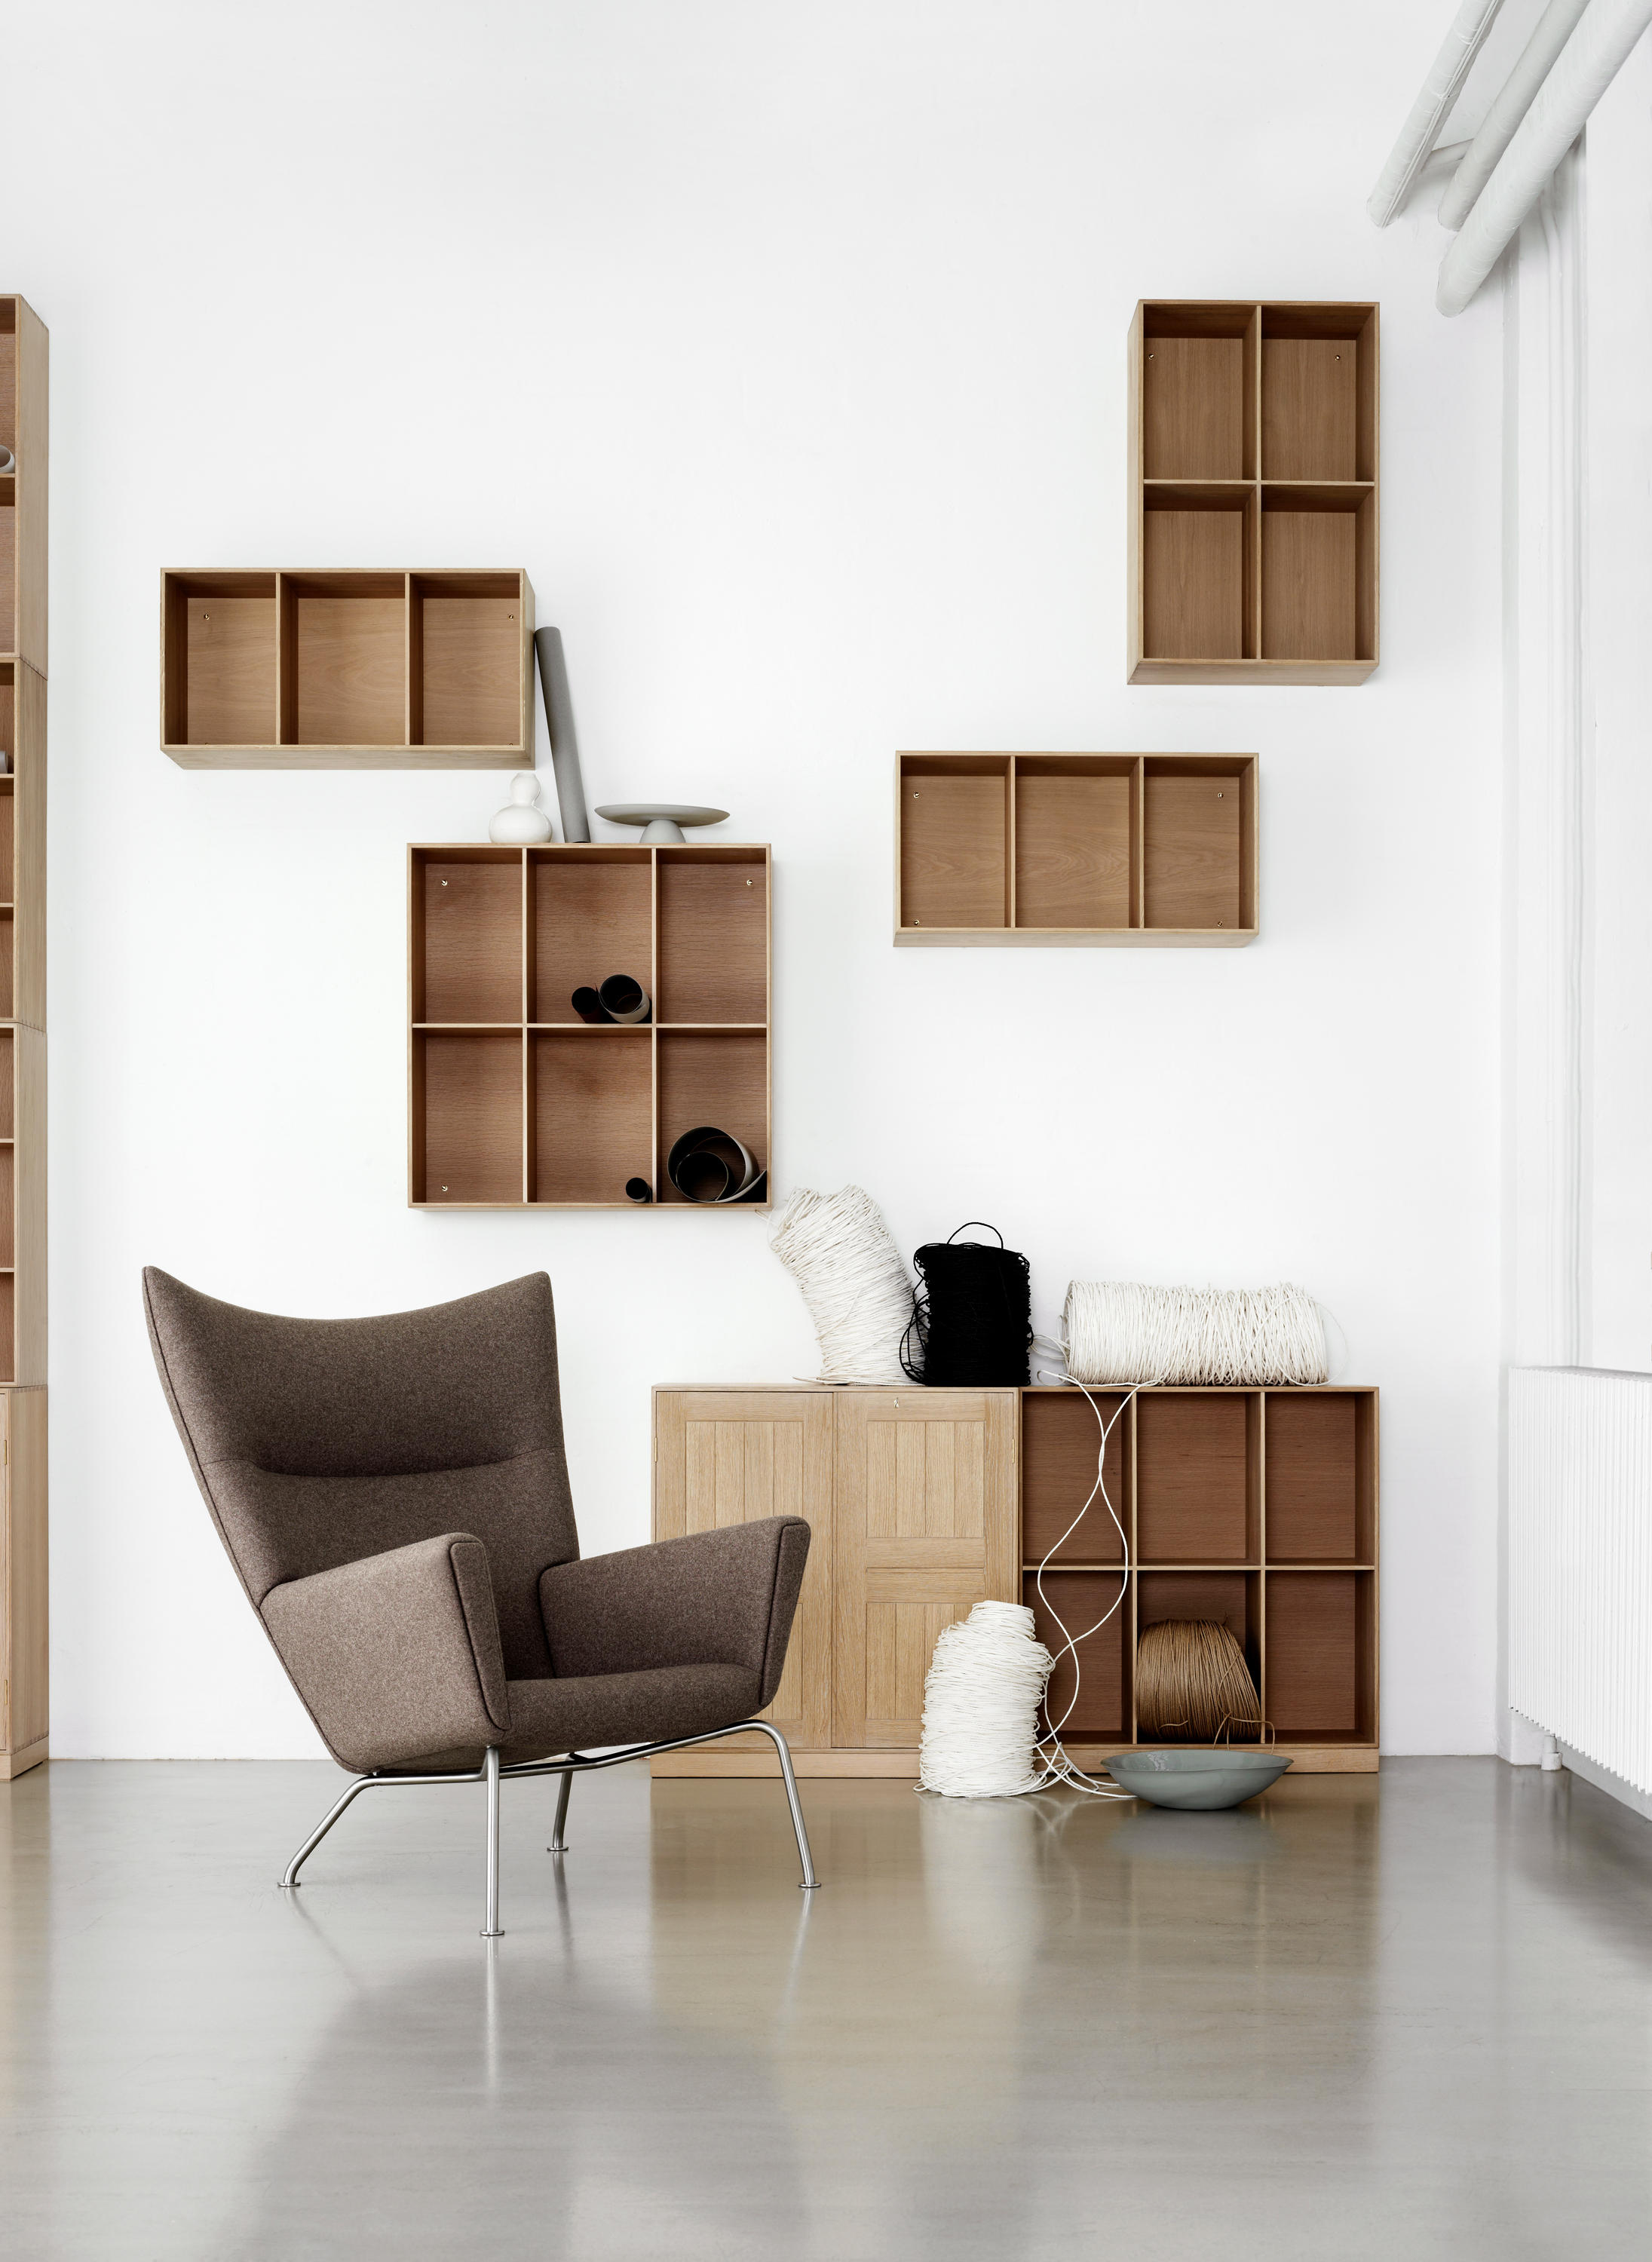 CH445 WING CHAIR - Lounge chairs from Carl Hansen & Søn | Architonic